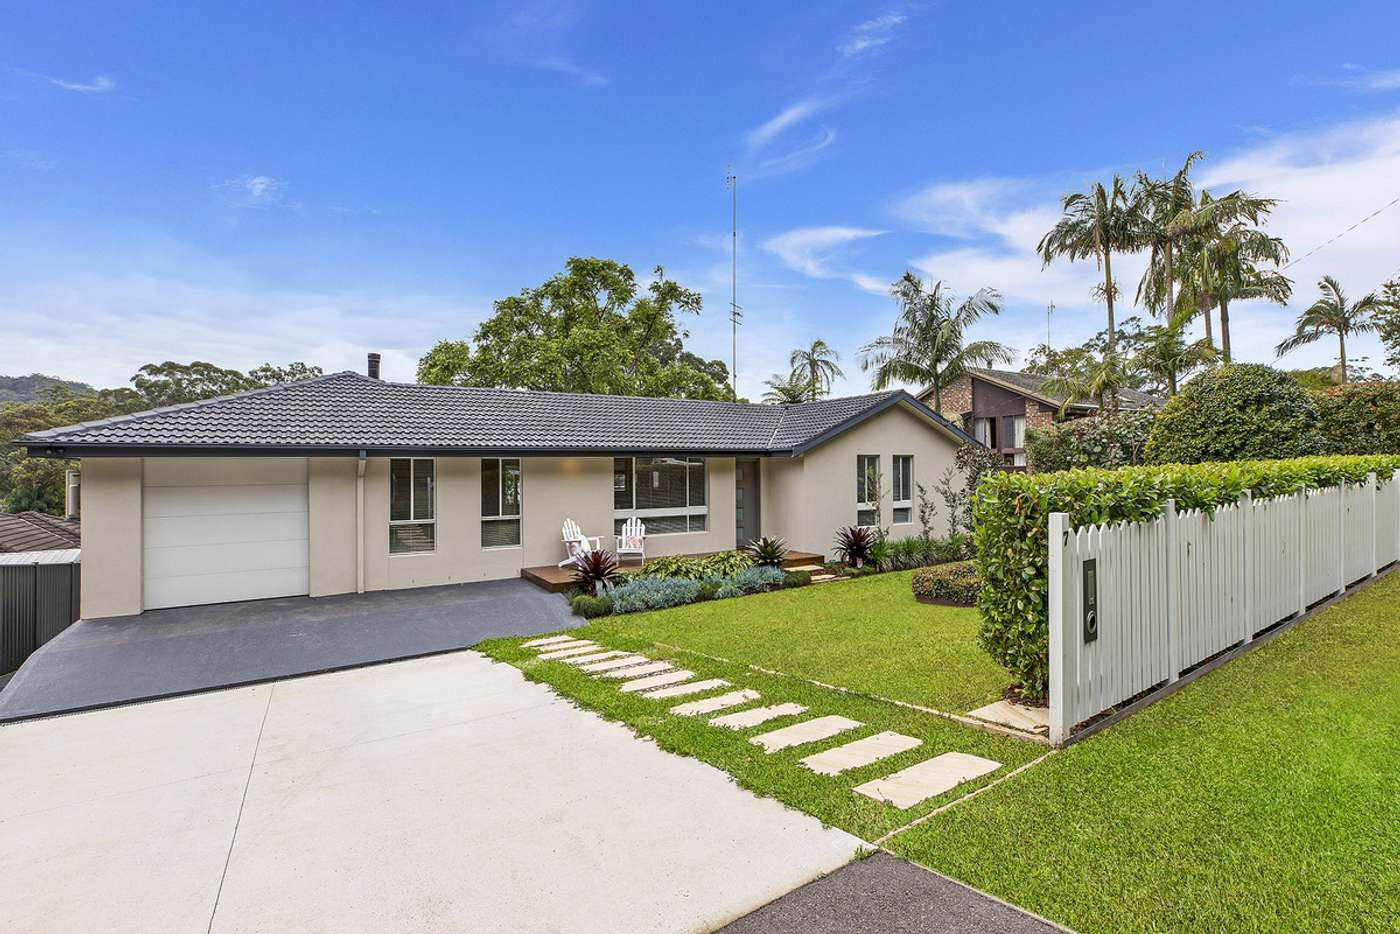 Main view of Homely house listing, 7 Brushwood Avenue, Kincumber NSW 2251